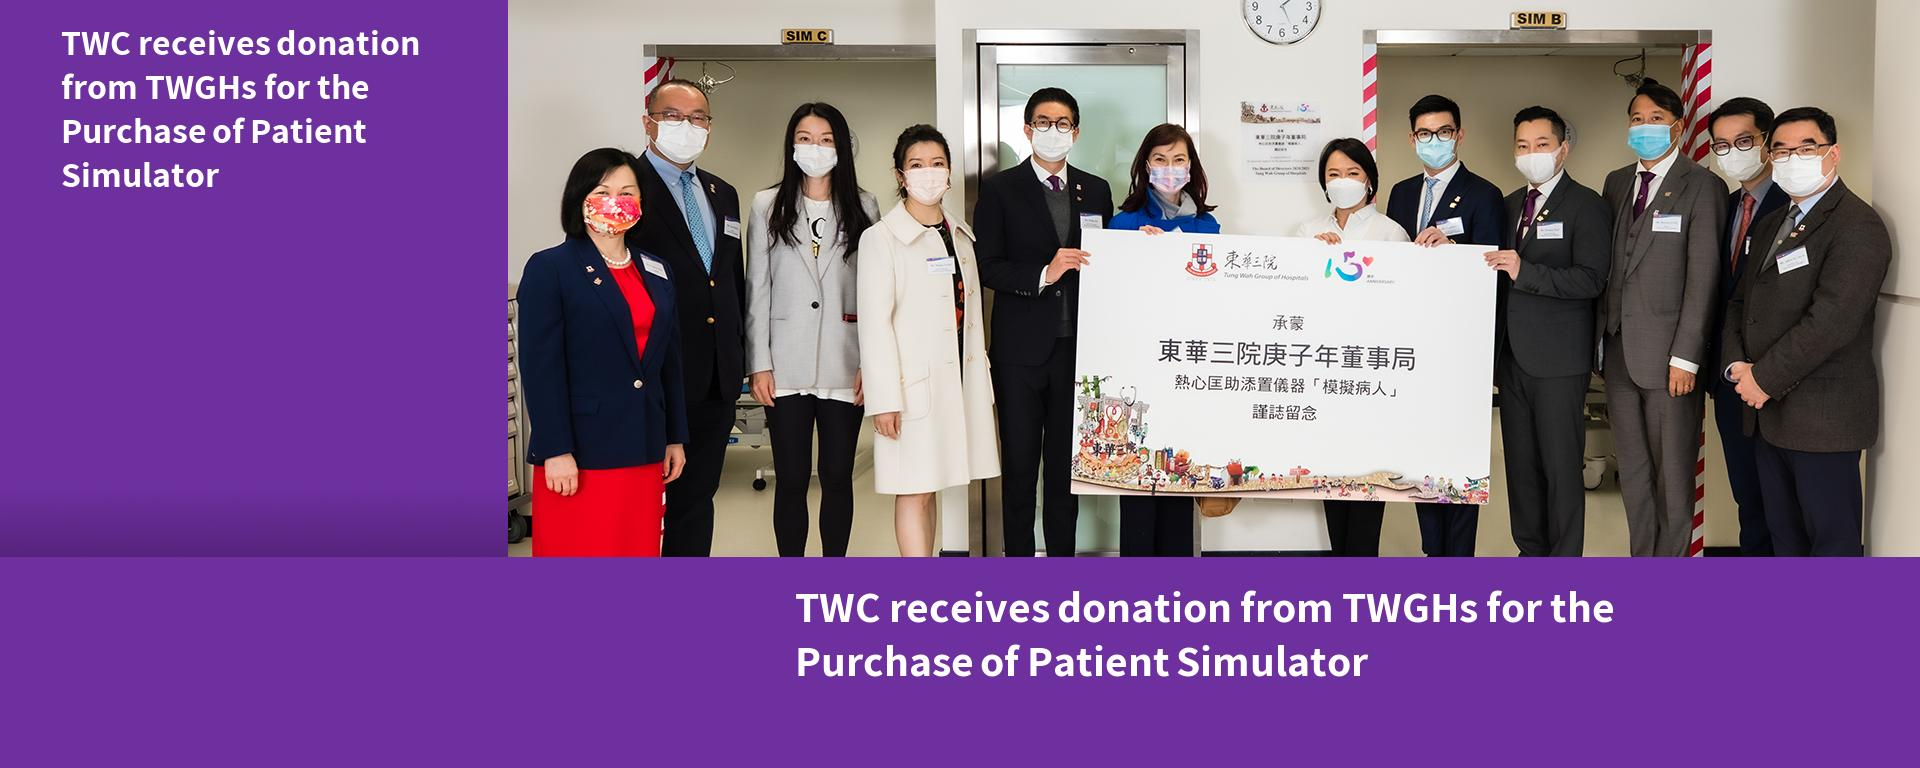 TWC receives donation from TWGHs for the Purchase of Patient Simulator